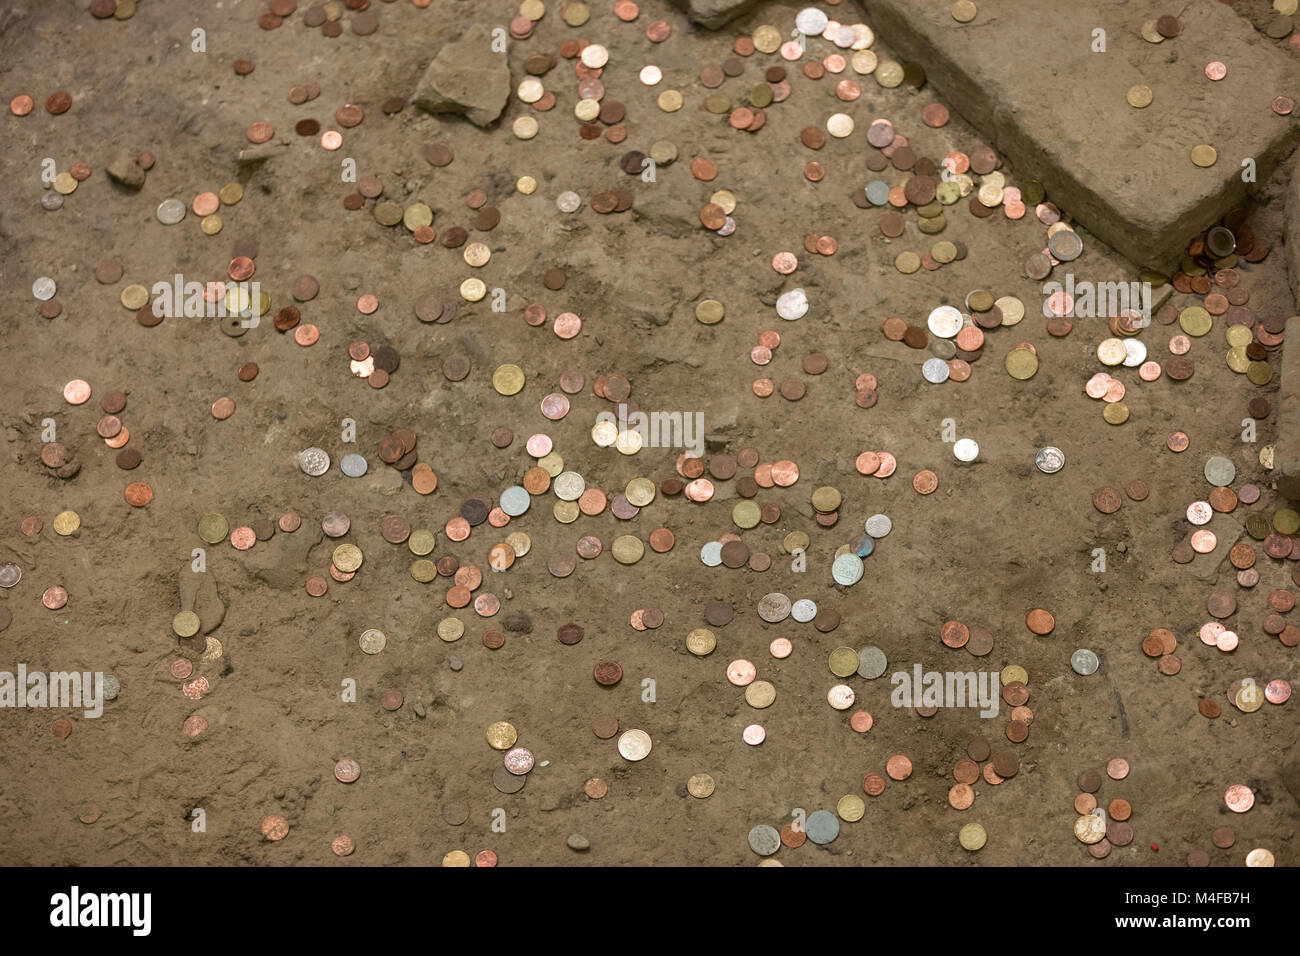 Pennies  in the ground - Stock Image